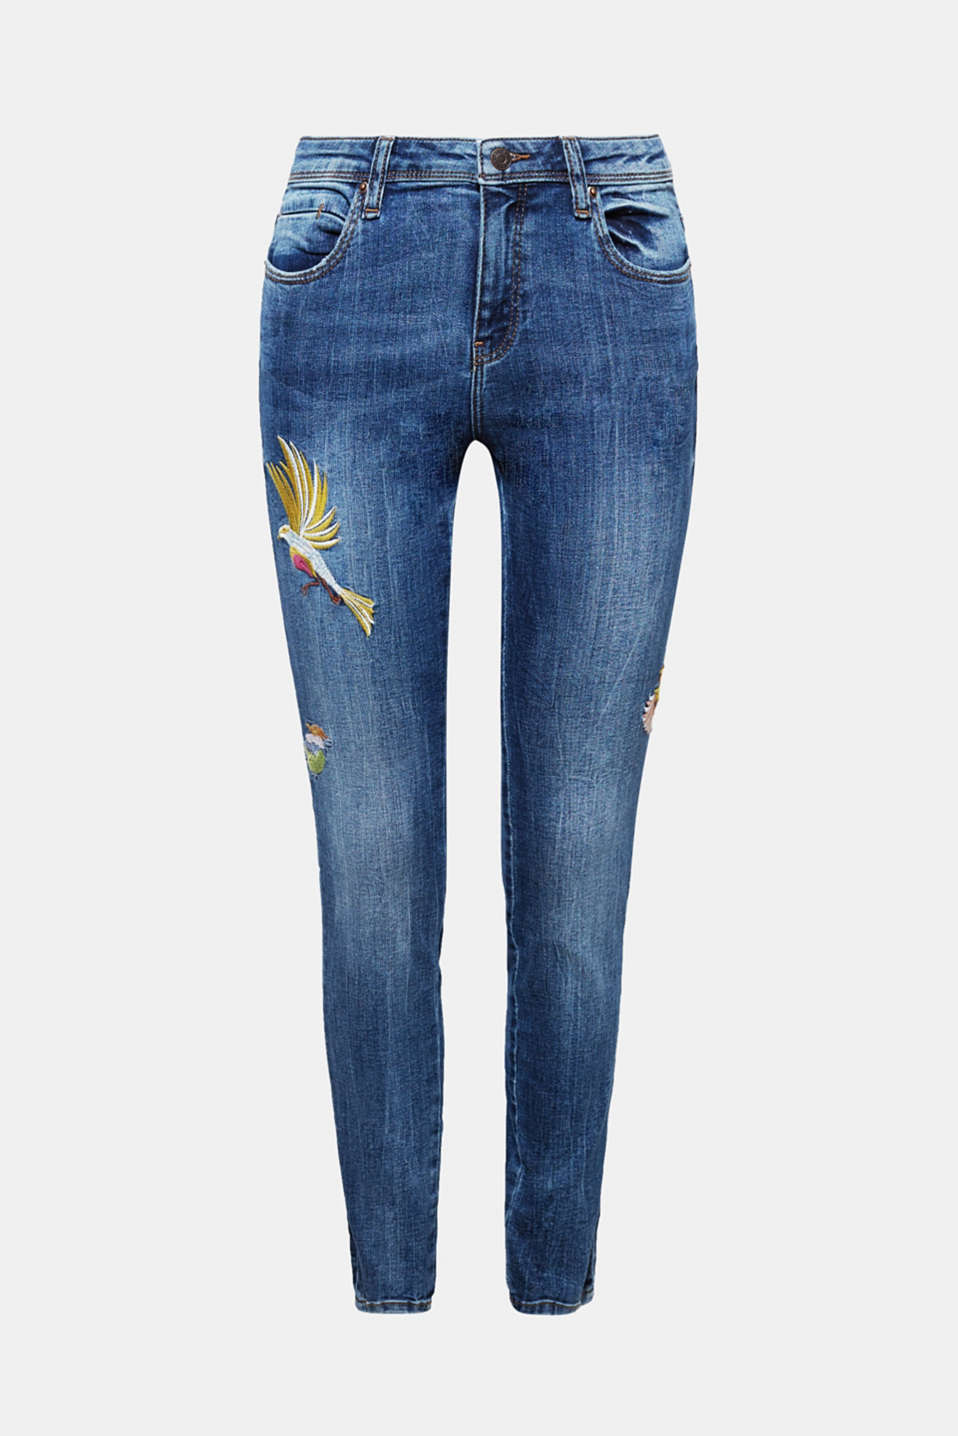 Your favourite jeans with a difference: This pair is made of lightweight denim in a slim fit with the usual added stretch for comfort and elaborate, embroidered bird motifs.